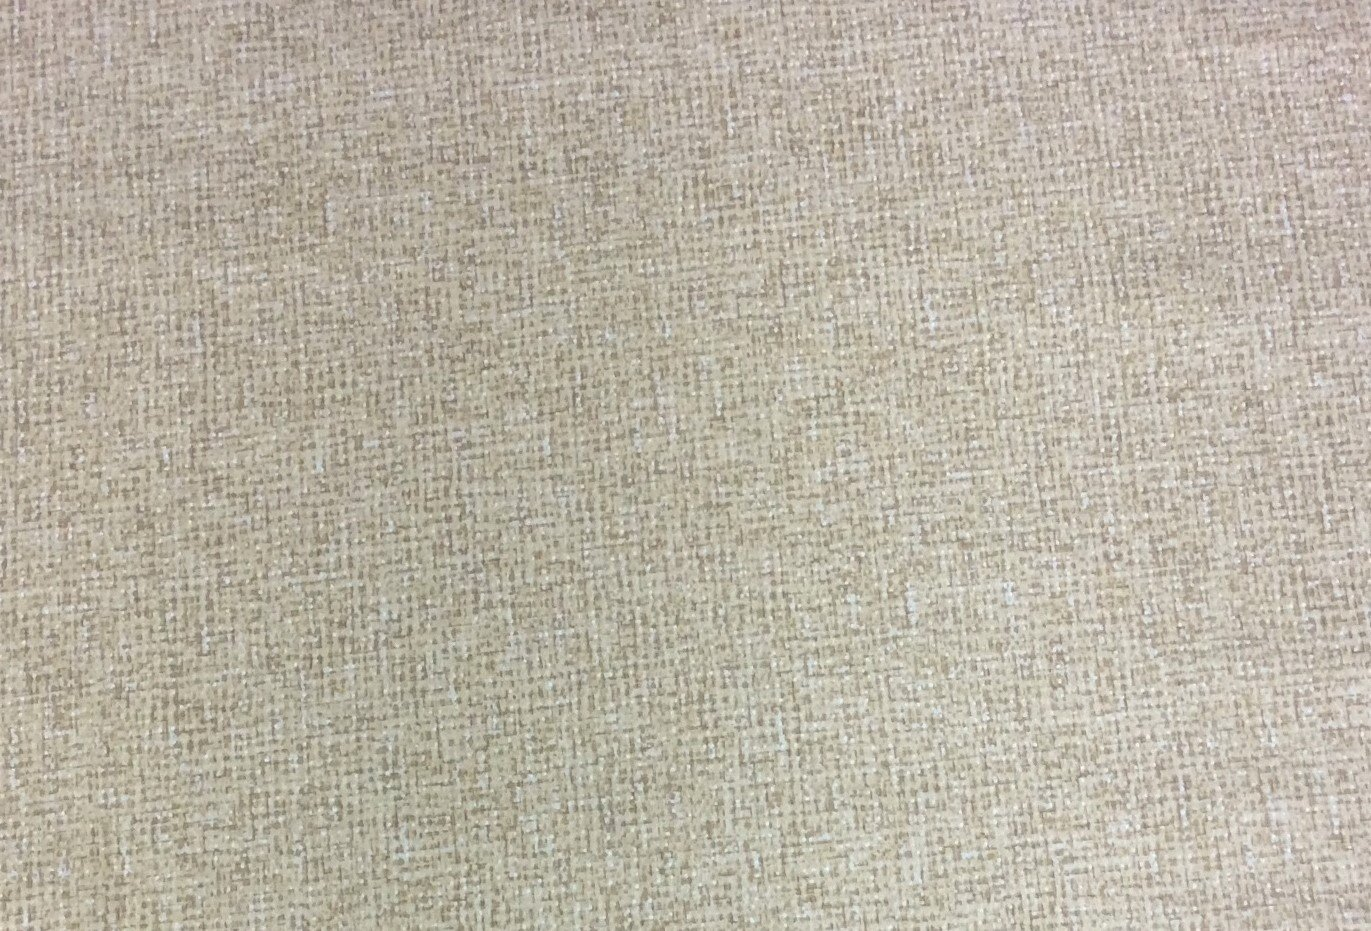 Metallic Crosshatch Gold Cream Check Blender Cotton Quilt Fabric MD207